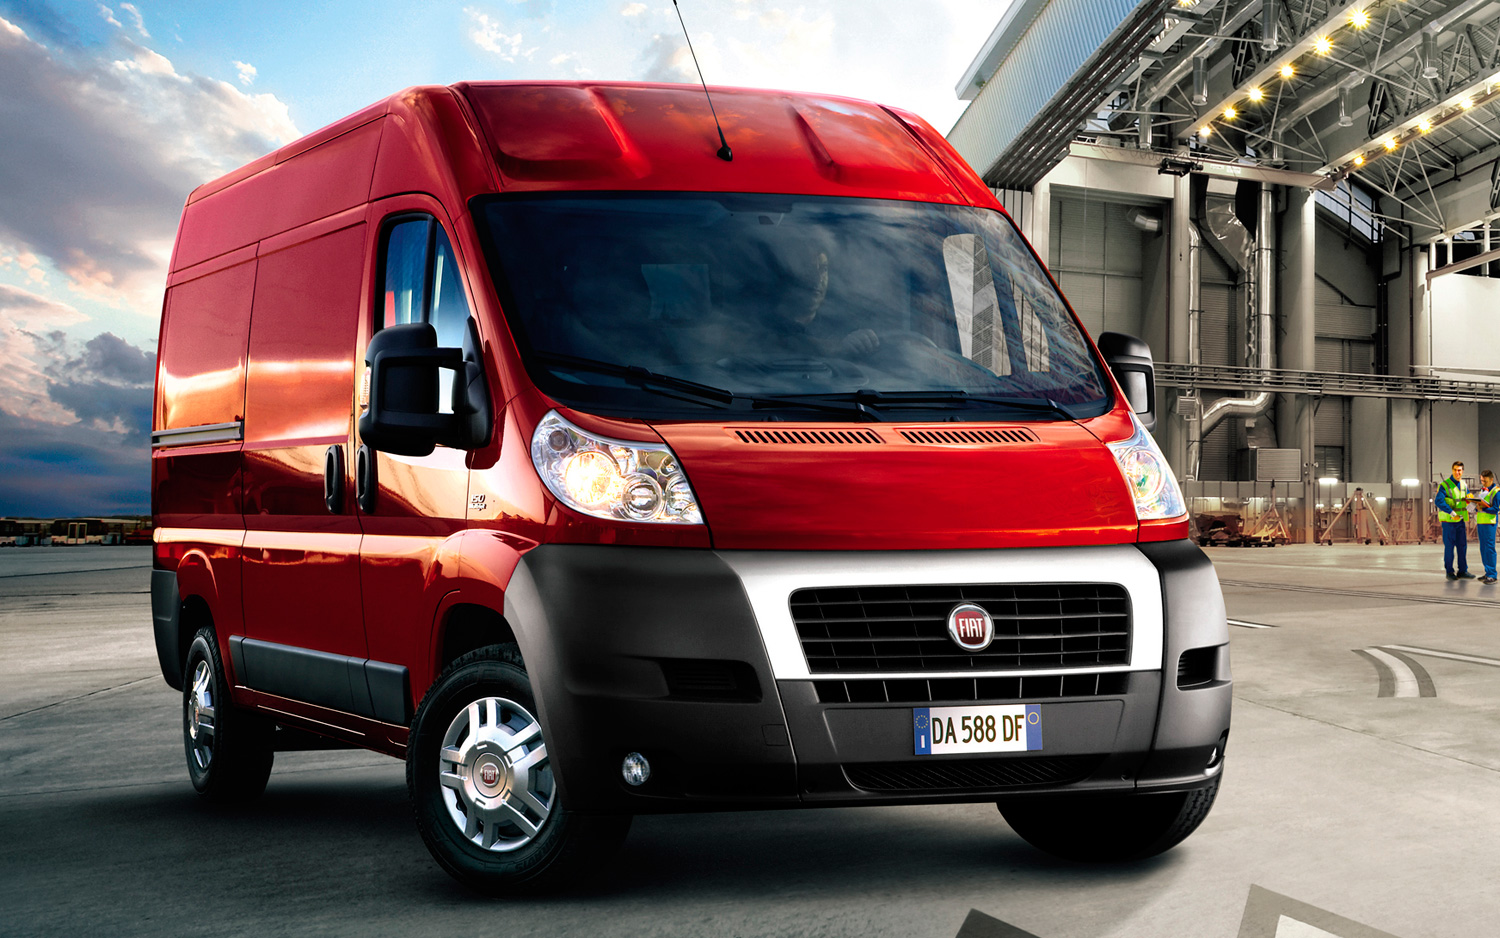 2012-Fiat-Ducato-front-view Photo on November 26, 2012 #187189 from Rumor